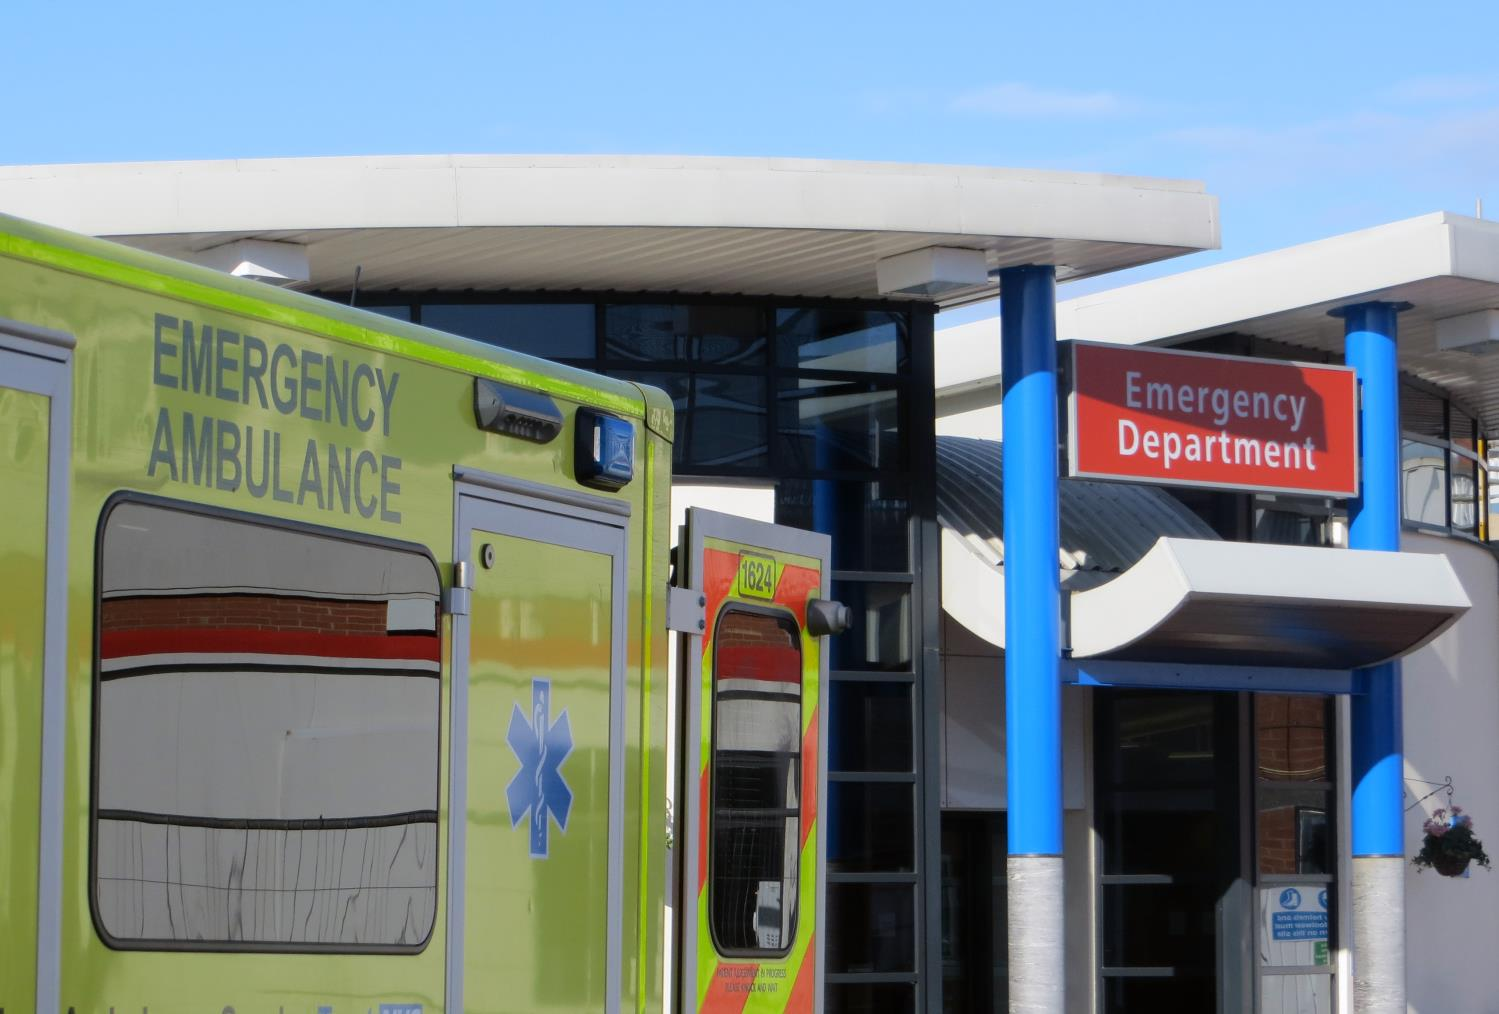 Nationwide Emergency Heating & Cooling solutions in the NHS